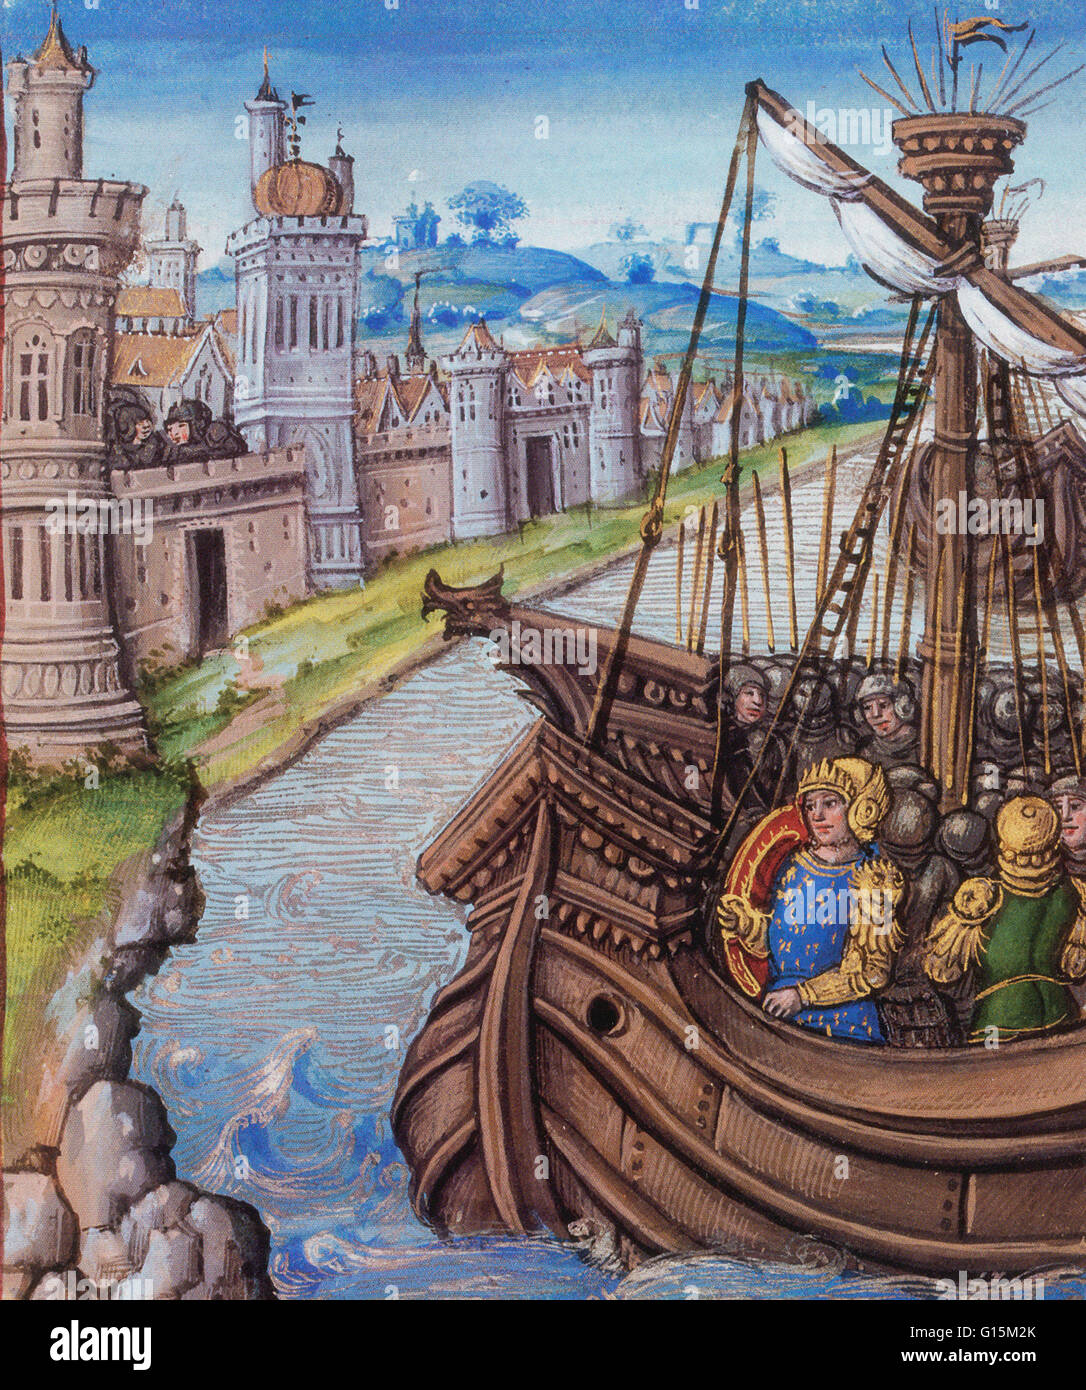 The Hundred Years' War was a series of conflicts waged from 1337 to 1453 between the Kingdom of England and - Stock Image